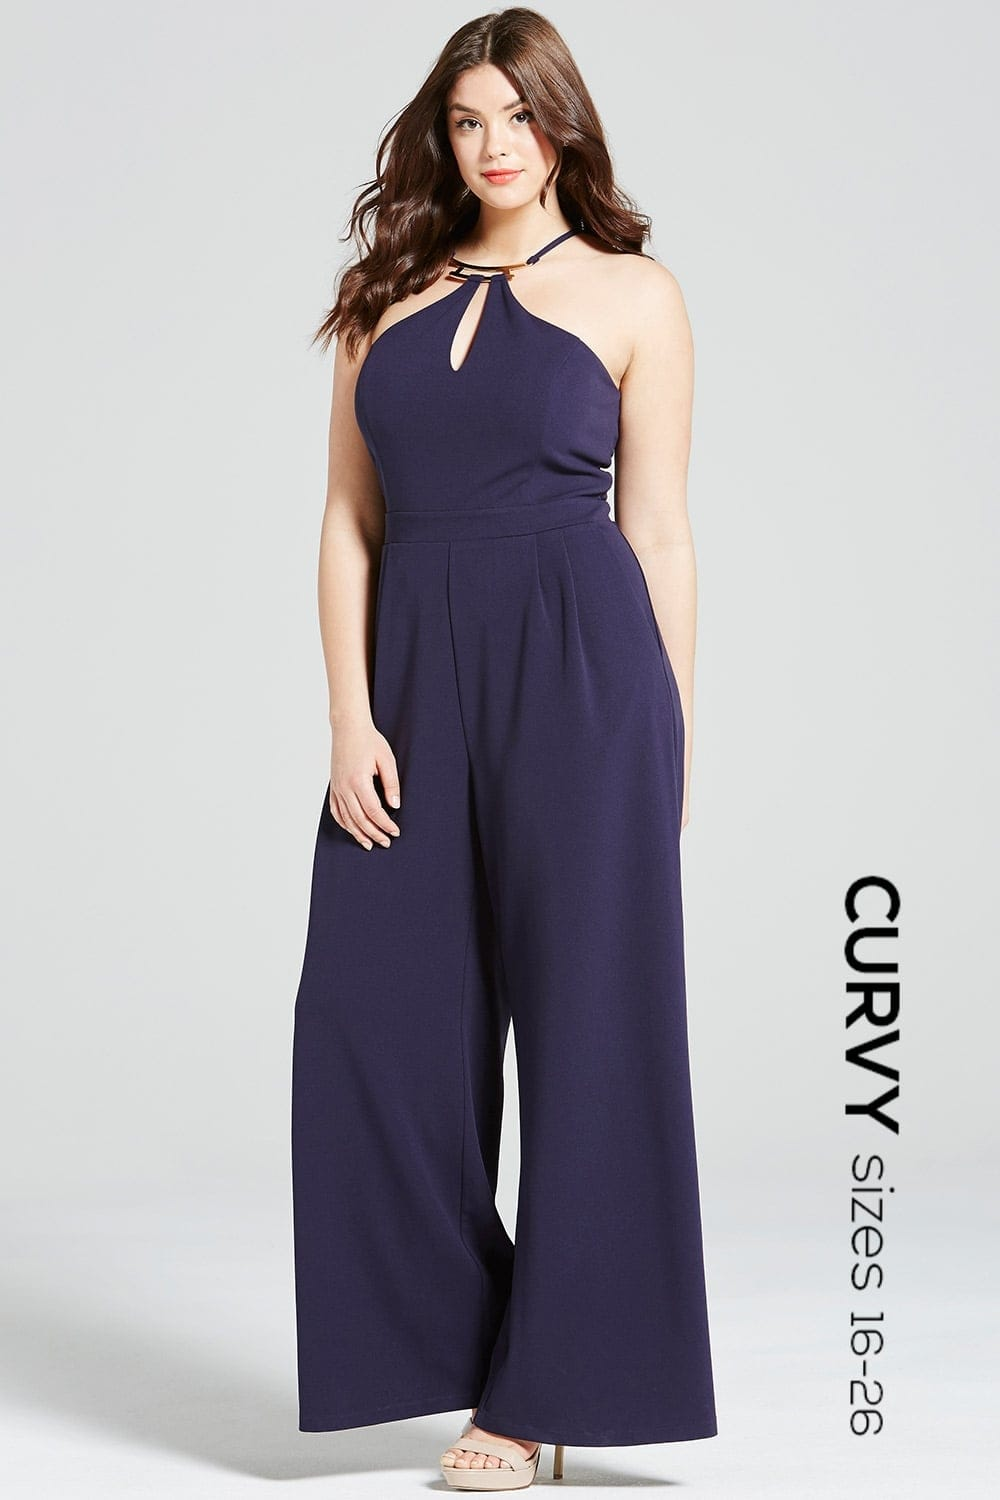 c601a4d69 Girls On Film Curvy Navy and Gold Neck Jumpsuit - Girls On Film Curvy from  Little Mistress UK